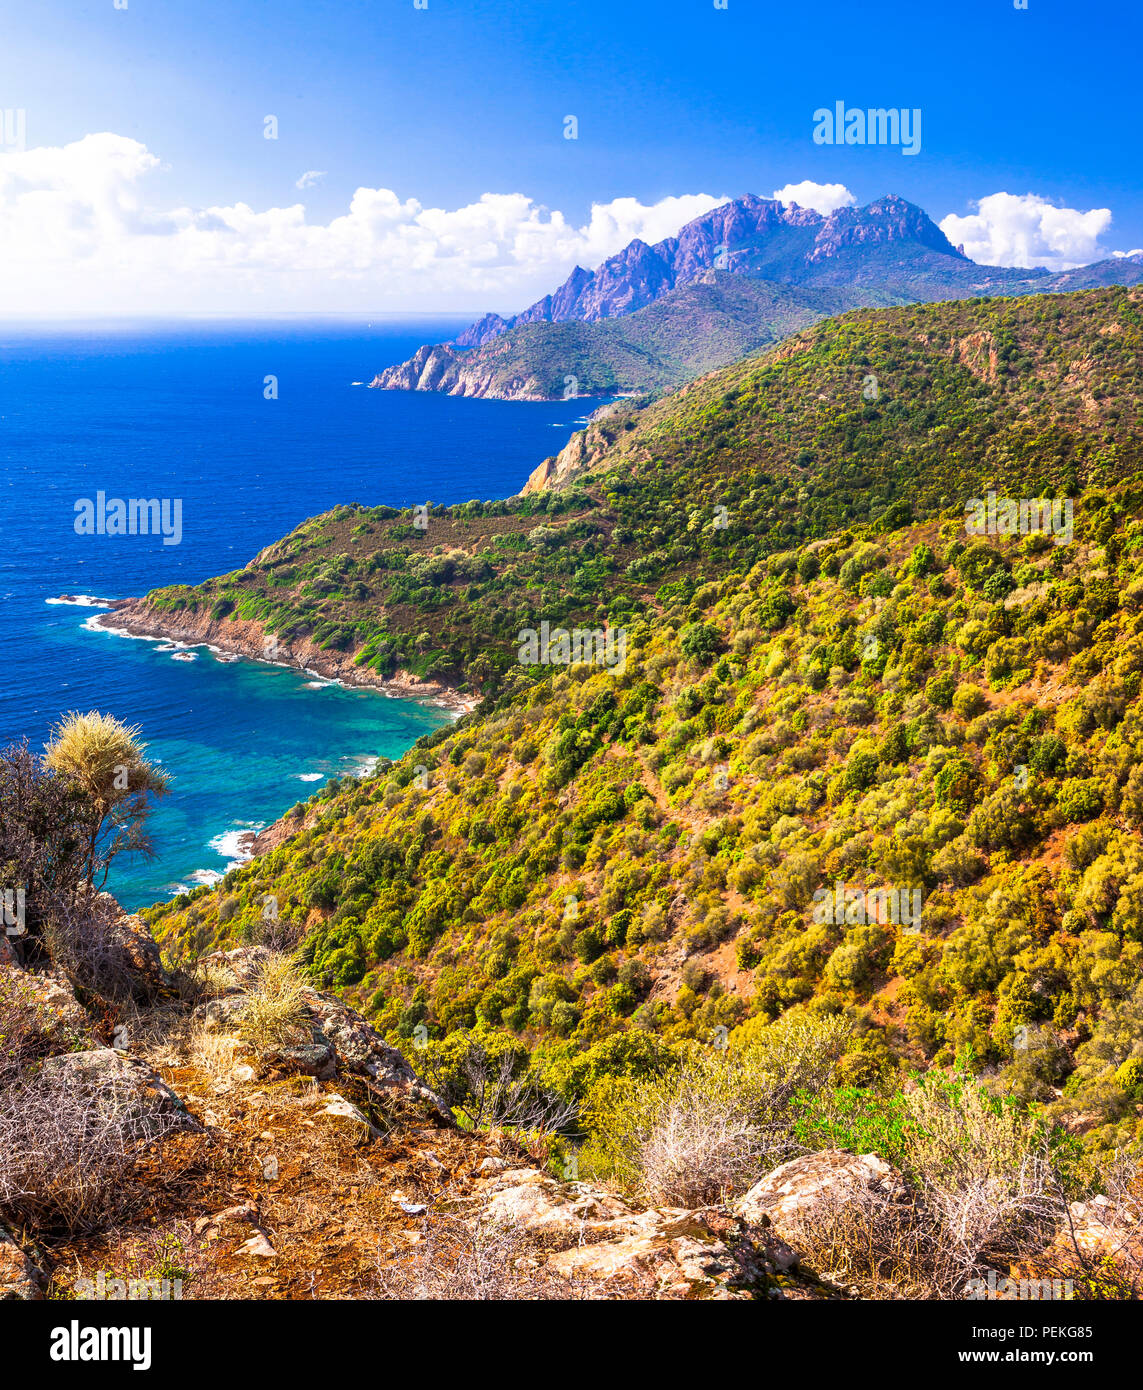 Impressive scenic landscape,view with mountains and sea,Calanques,Corsica,France. - Stock Image